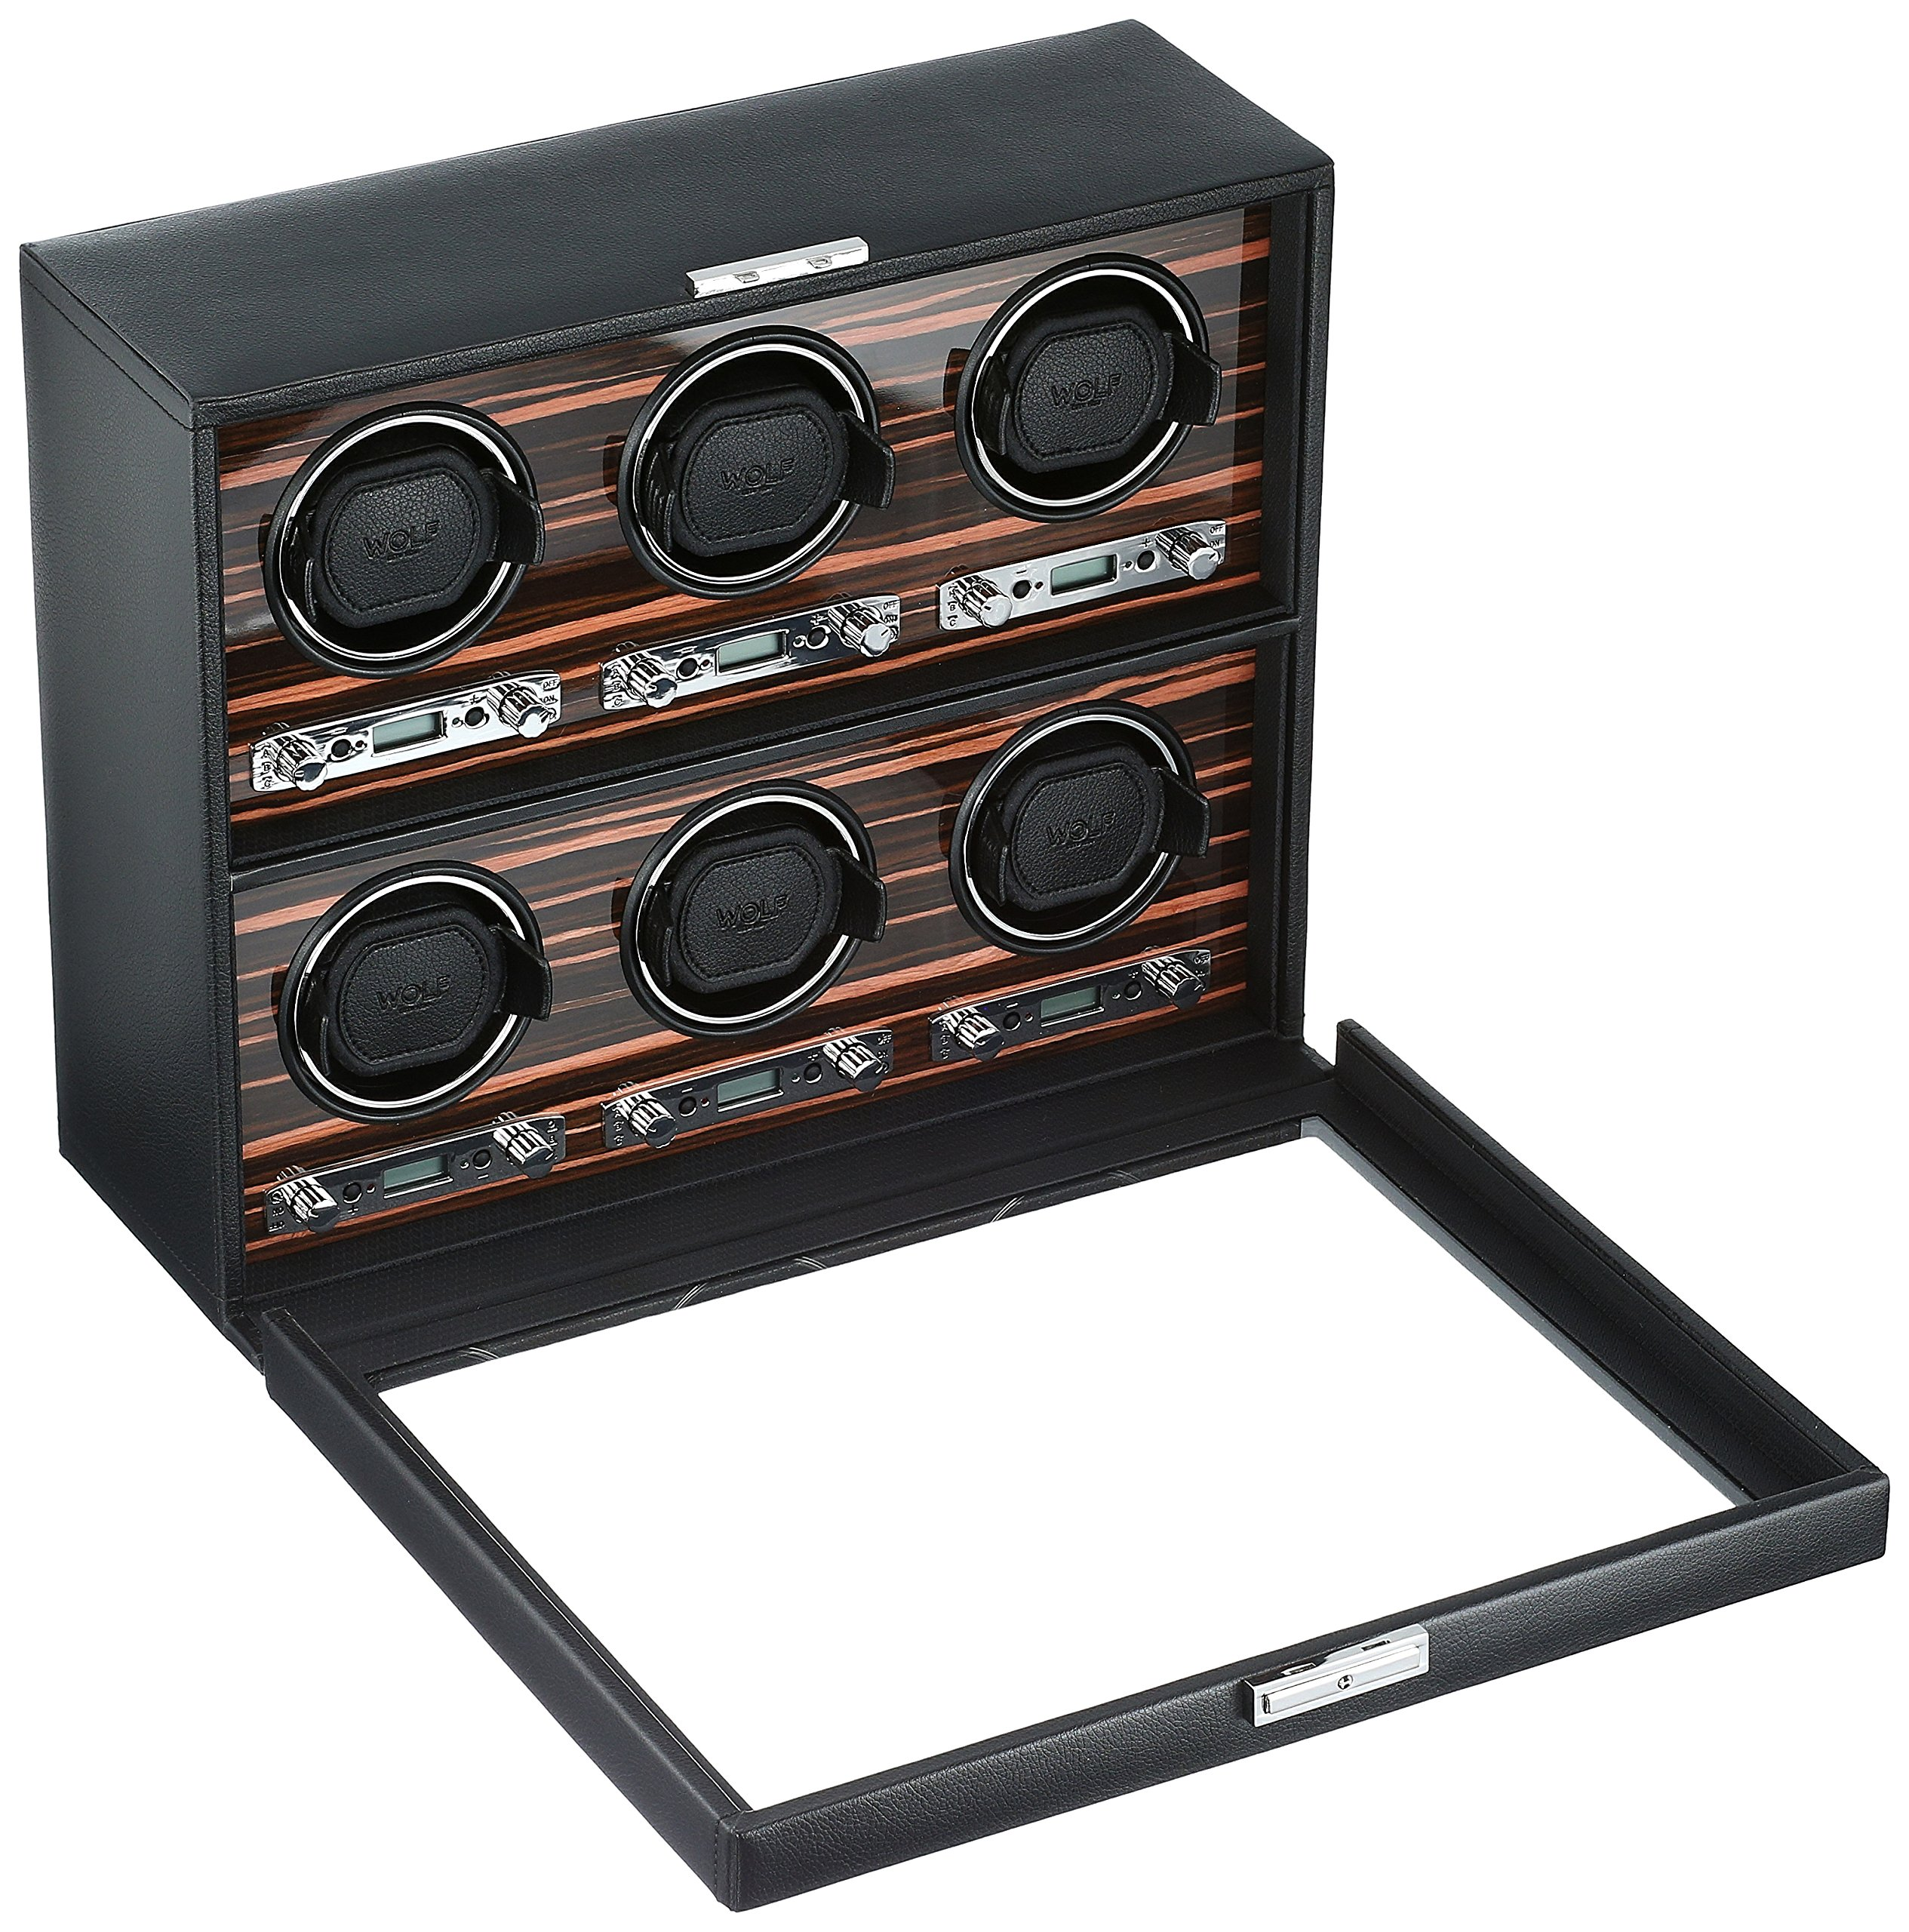 WOLF 459256 Roadster 6 Piece Watch Winder with Cover, Black by WOLF (Image #2)